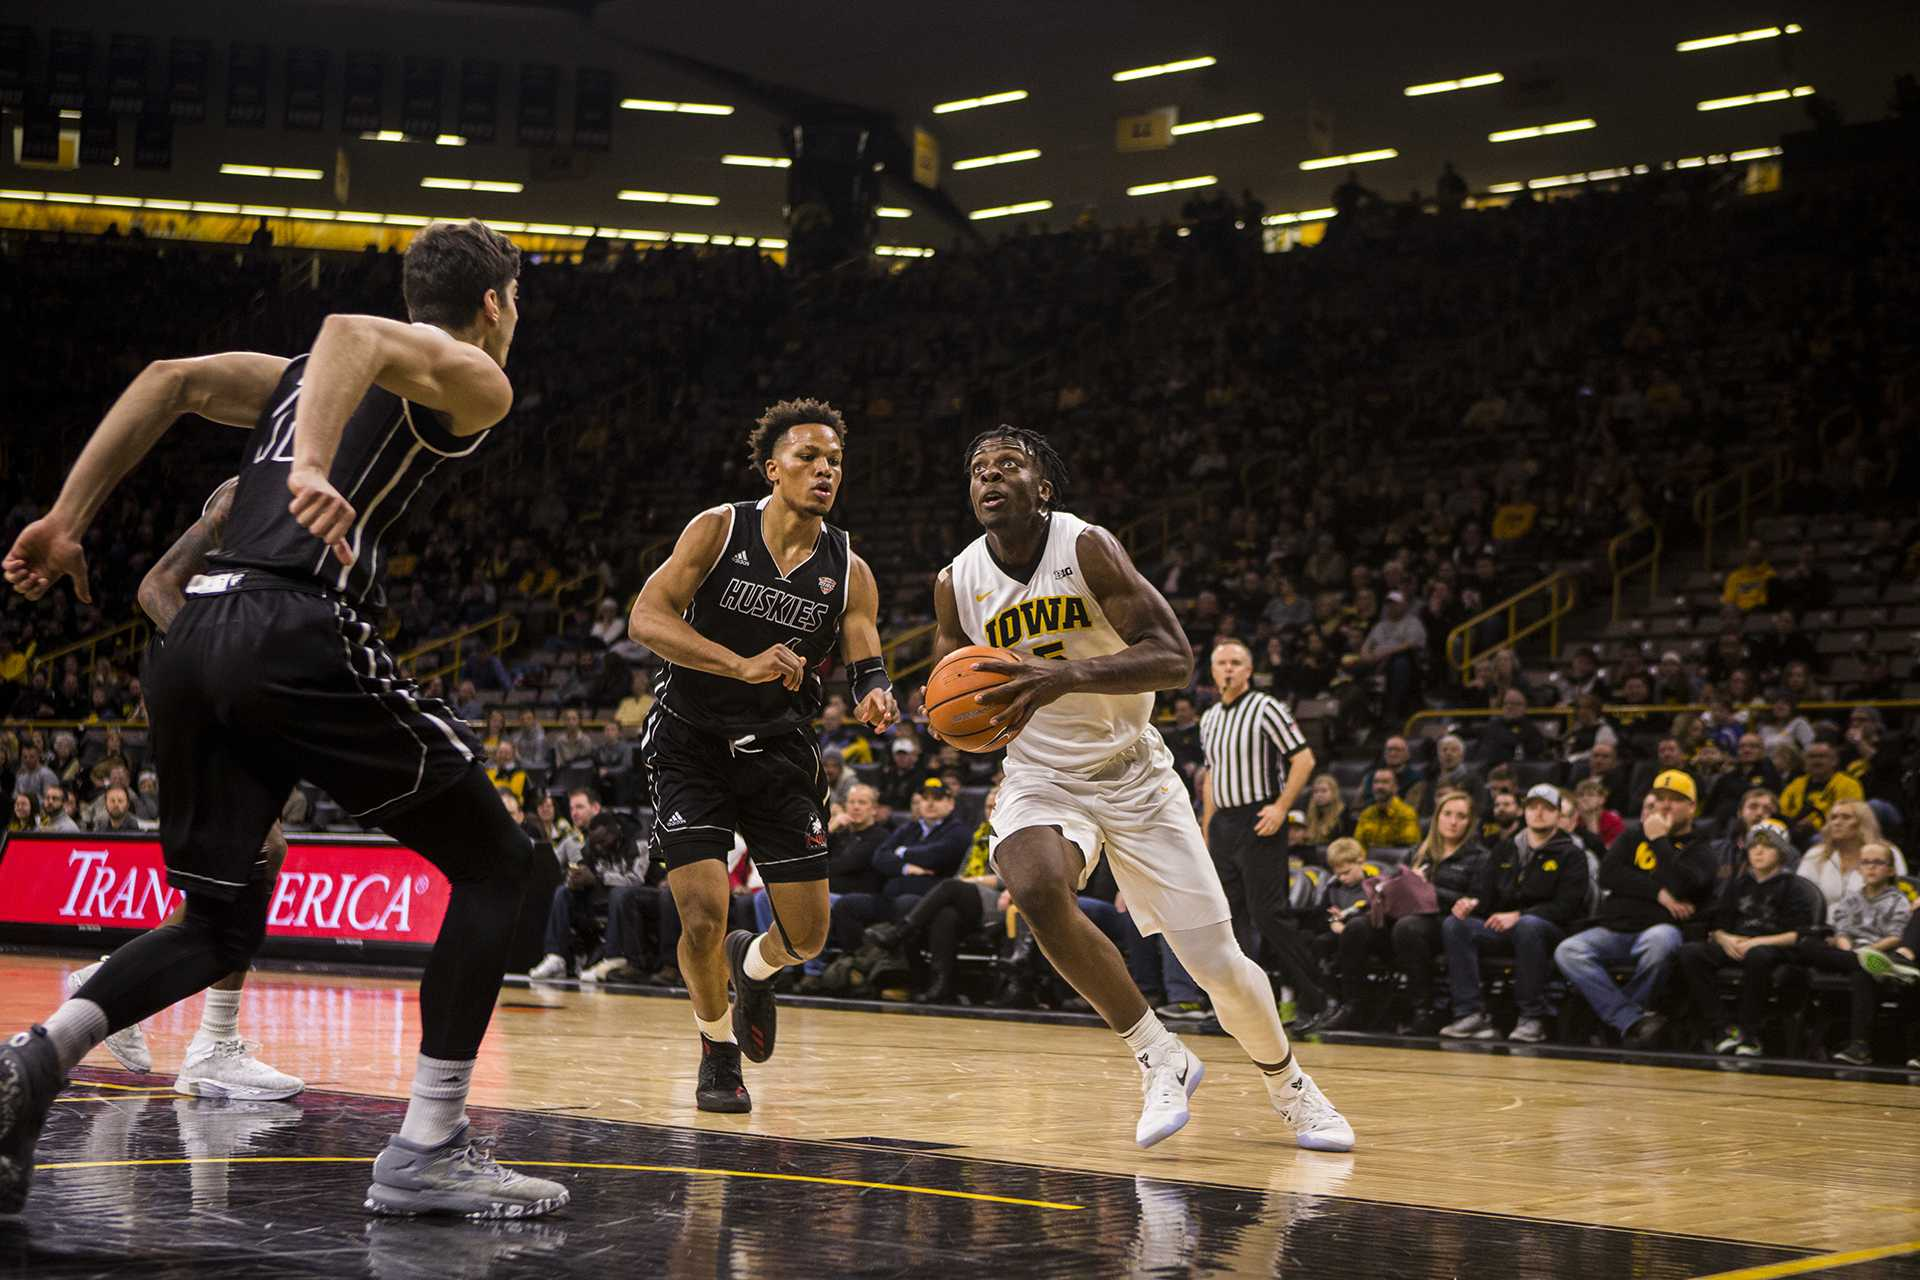 Iowa forward Tyler Cook drives the ball during Iowa's game against Northern Illinois on Friday Dec. 29, 2017. The Hawkeyes defeated the Huskies 98 to 75. (Nick Rohlman/The Daily Iowan)